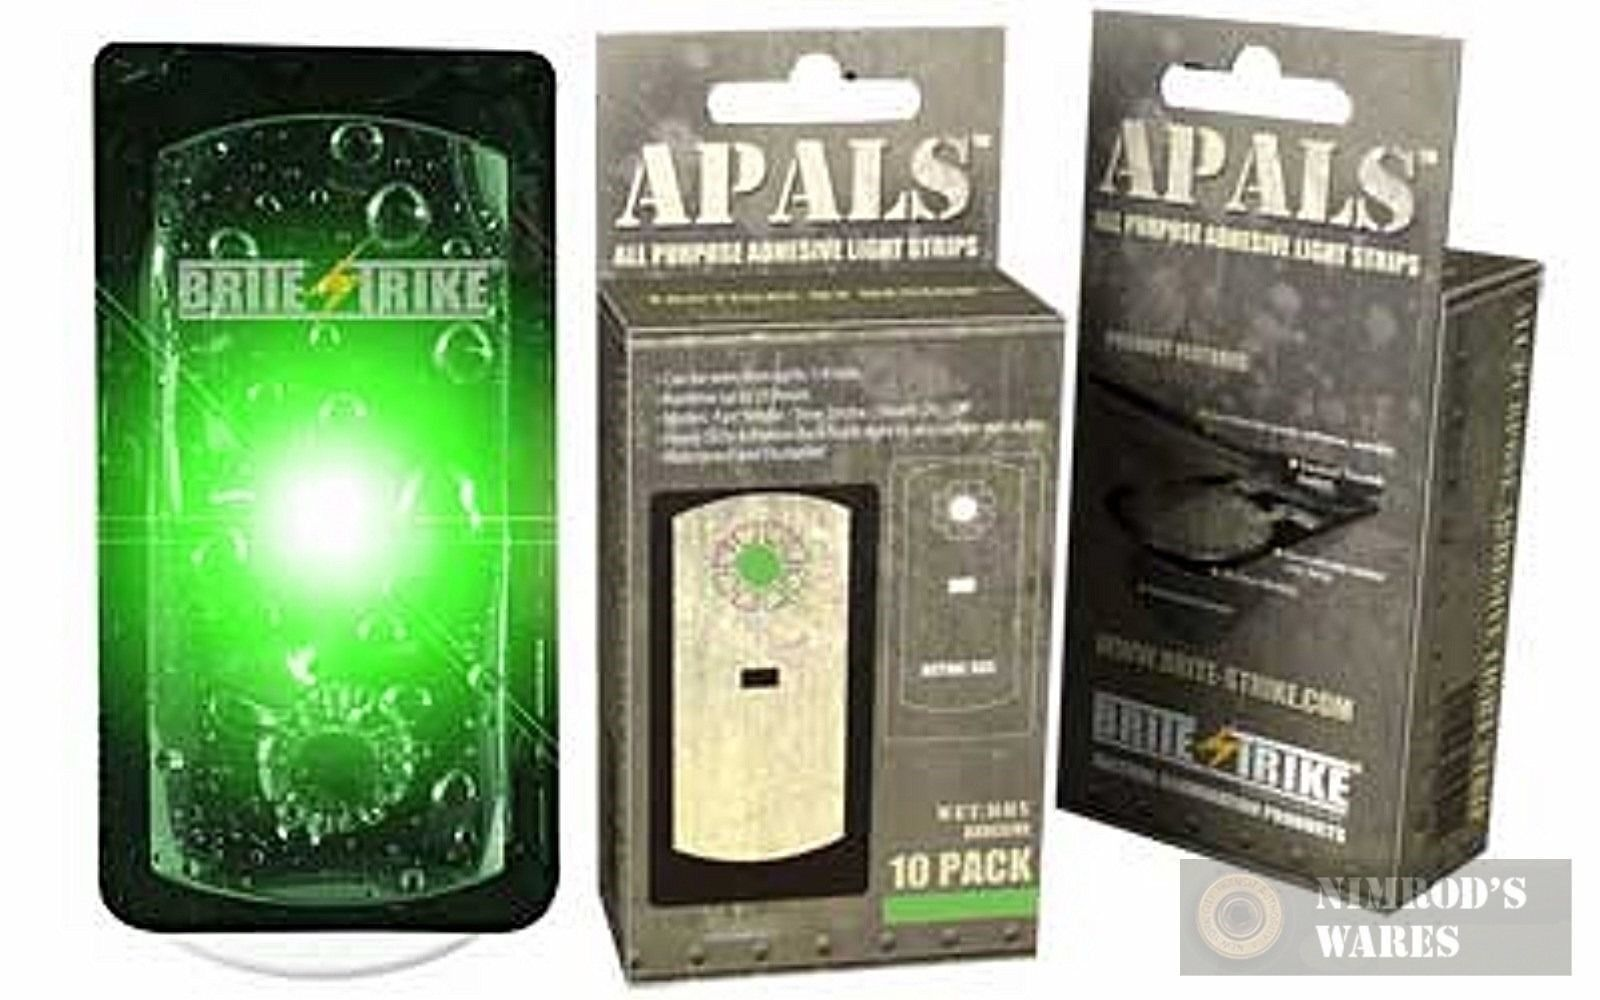 BRITE-STRIKE APALS10-GRN Adhesive Light Strips GREEN x 10 Pk. NEW FAST SHIP